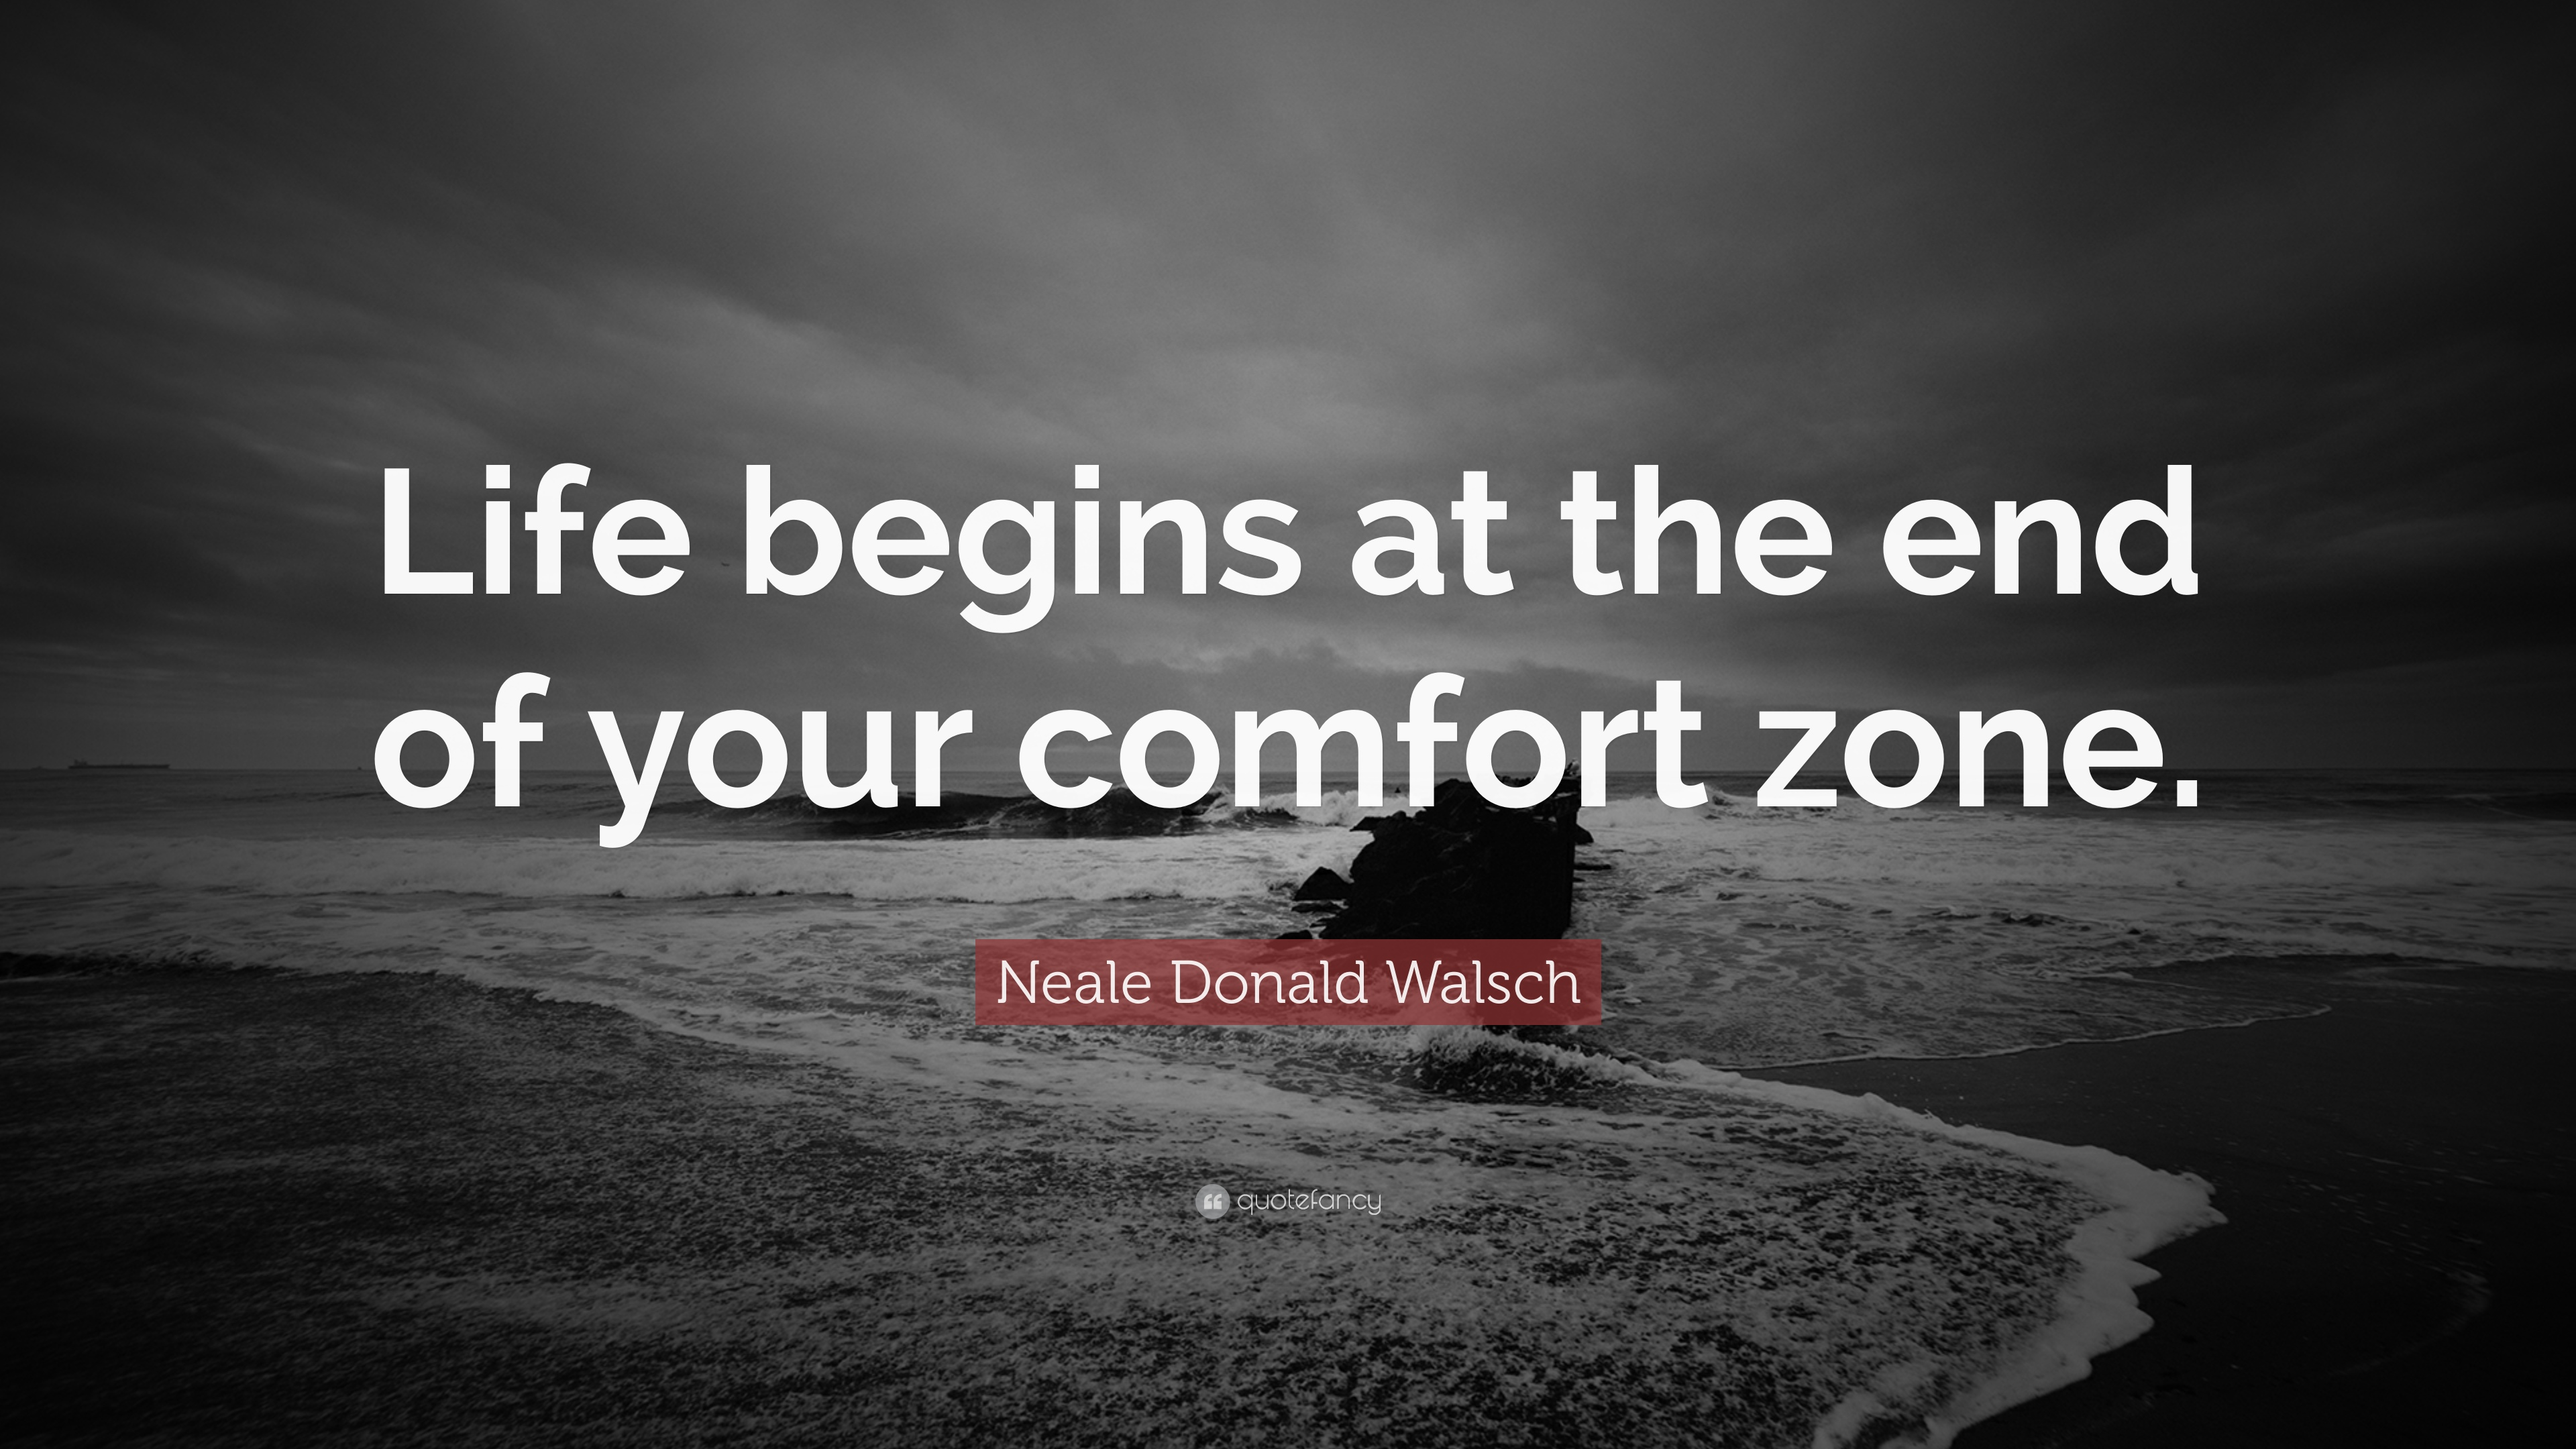 """Motivational Quotes: """"Life begins at the end of your comfort zone ..."""